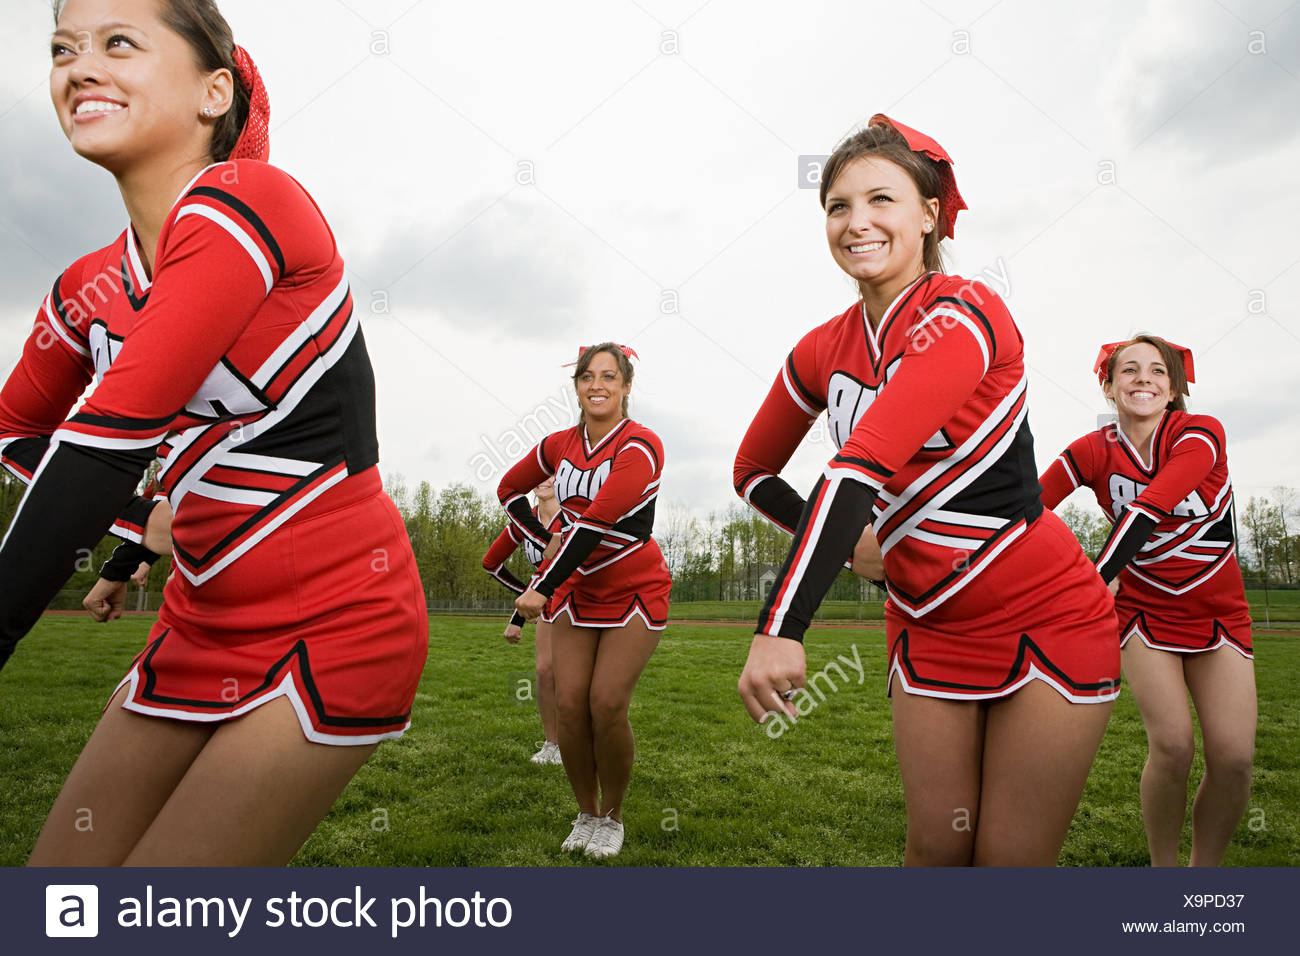 Cheerleaders performing routine - Stock Image